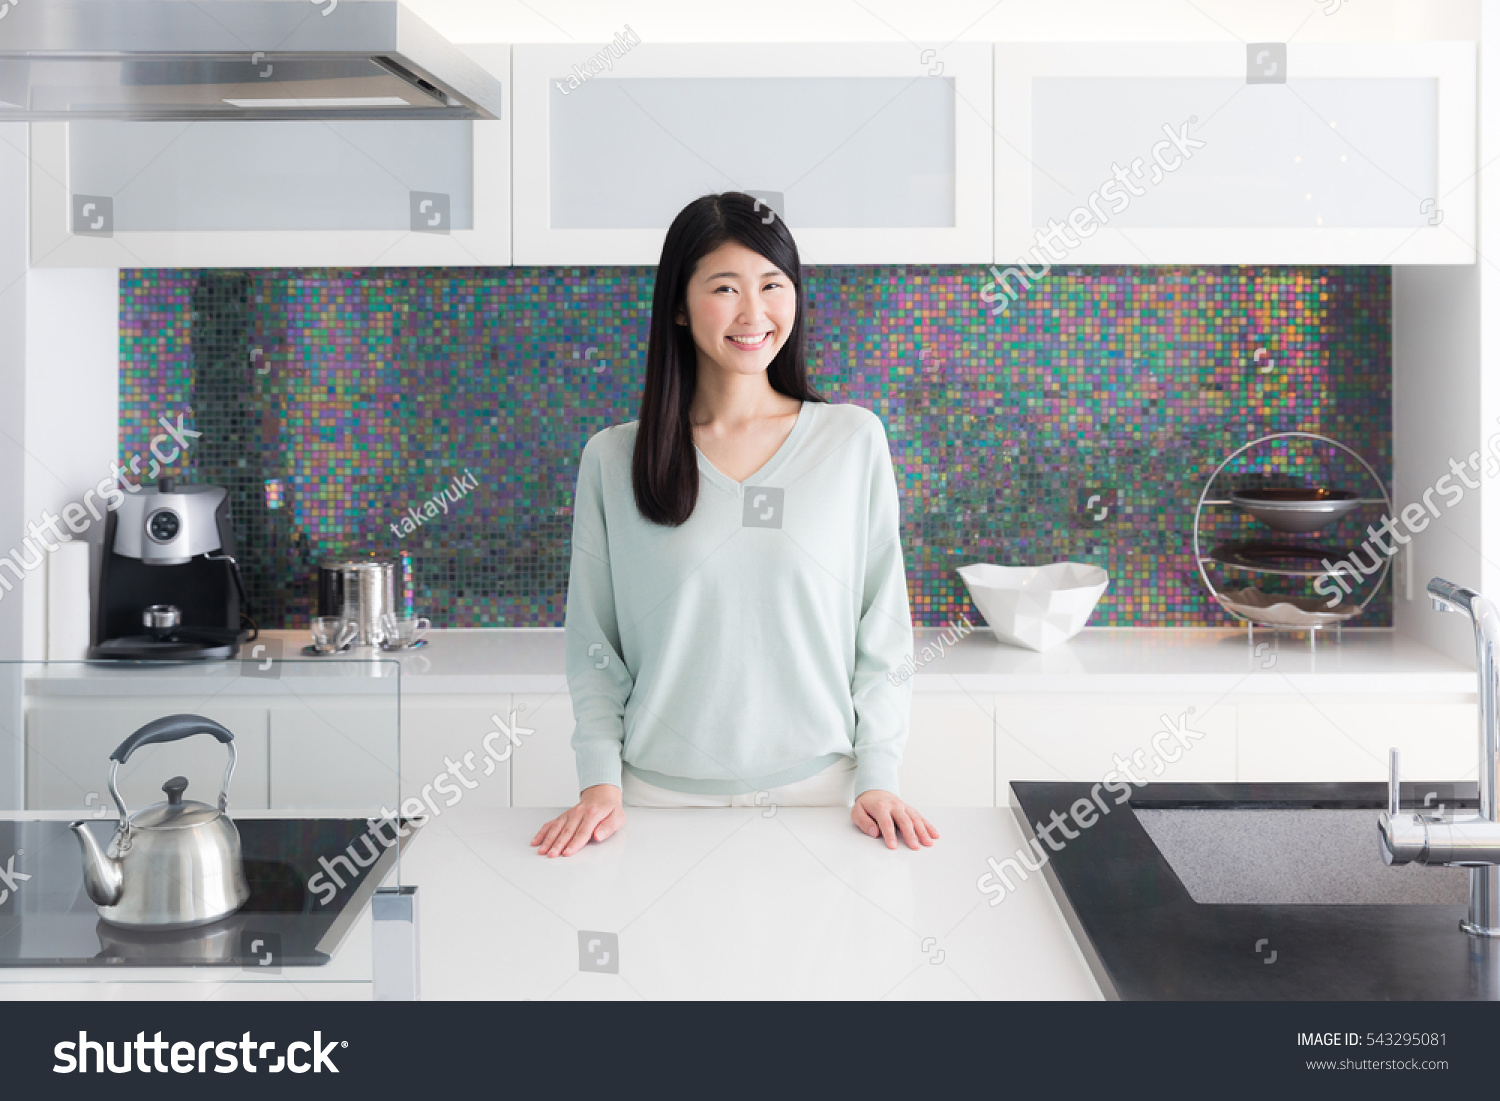 Portrait Young Asian Woman Kitchen Room Stock Photo (Royalty Free ...